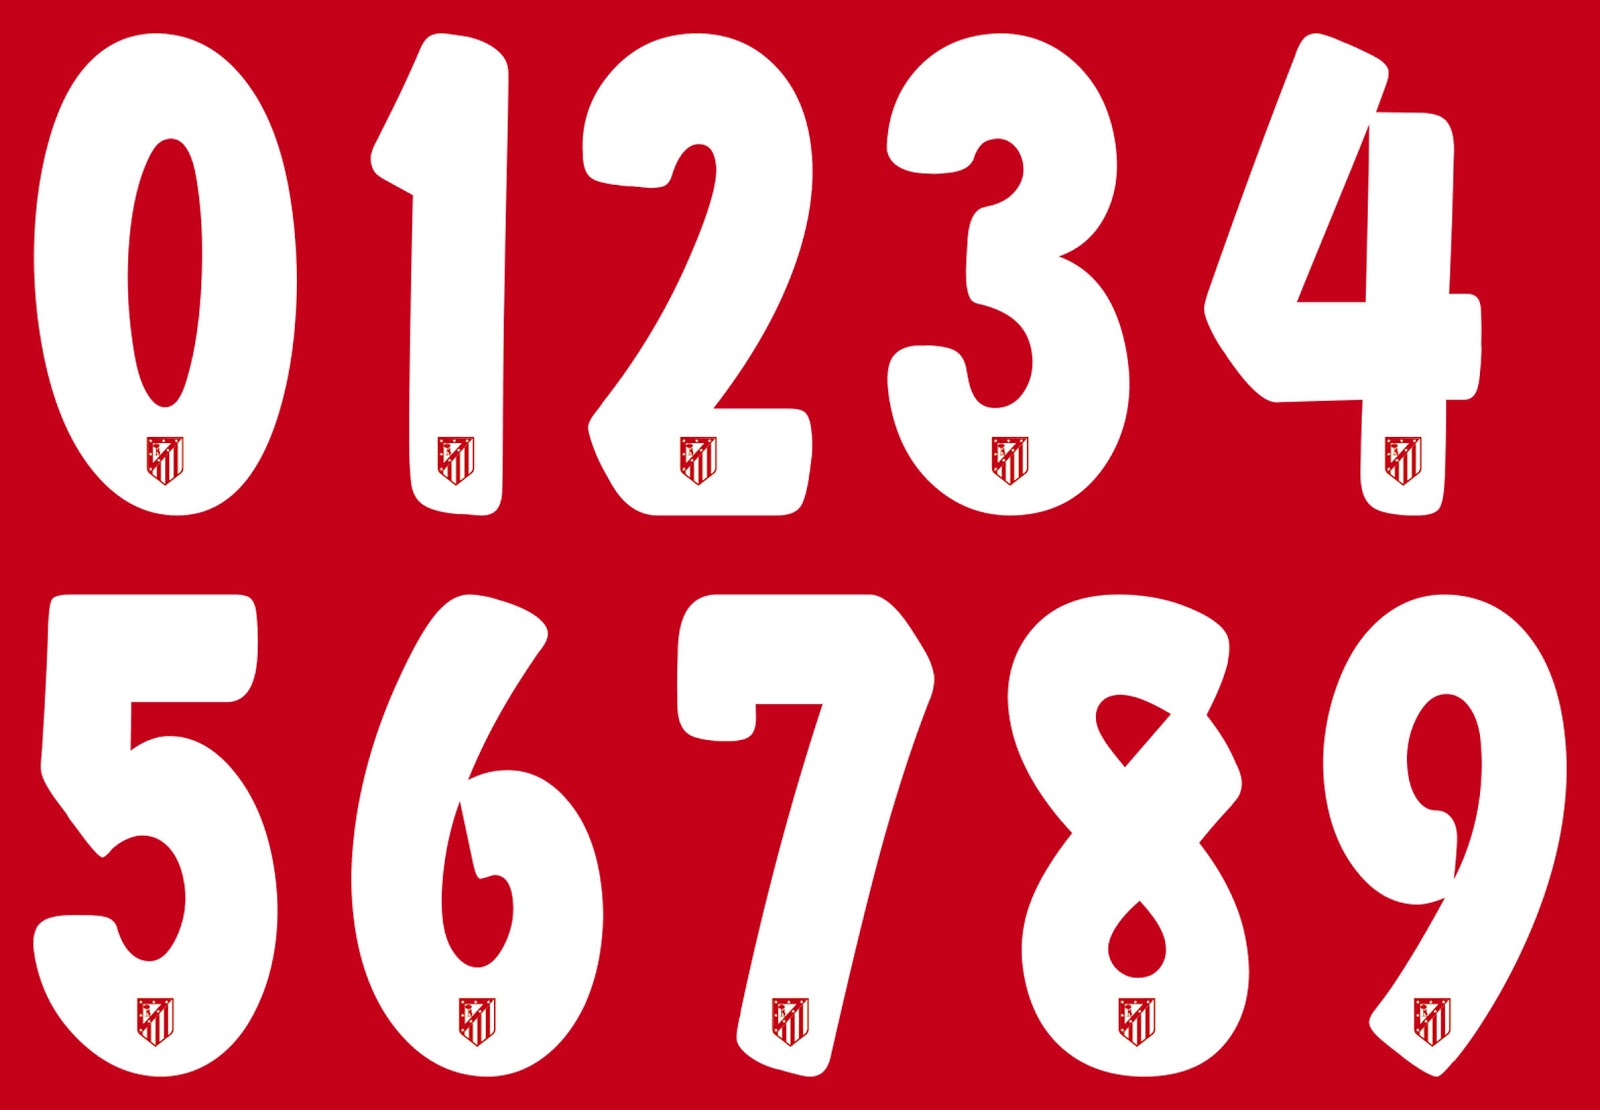 atletico-15-16-kit-numbers-style.jpg